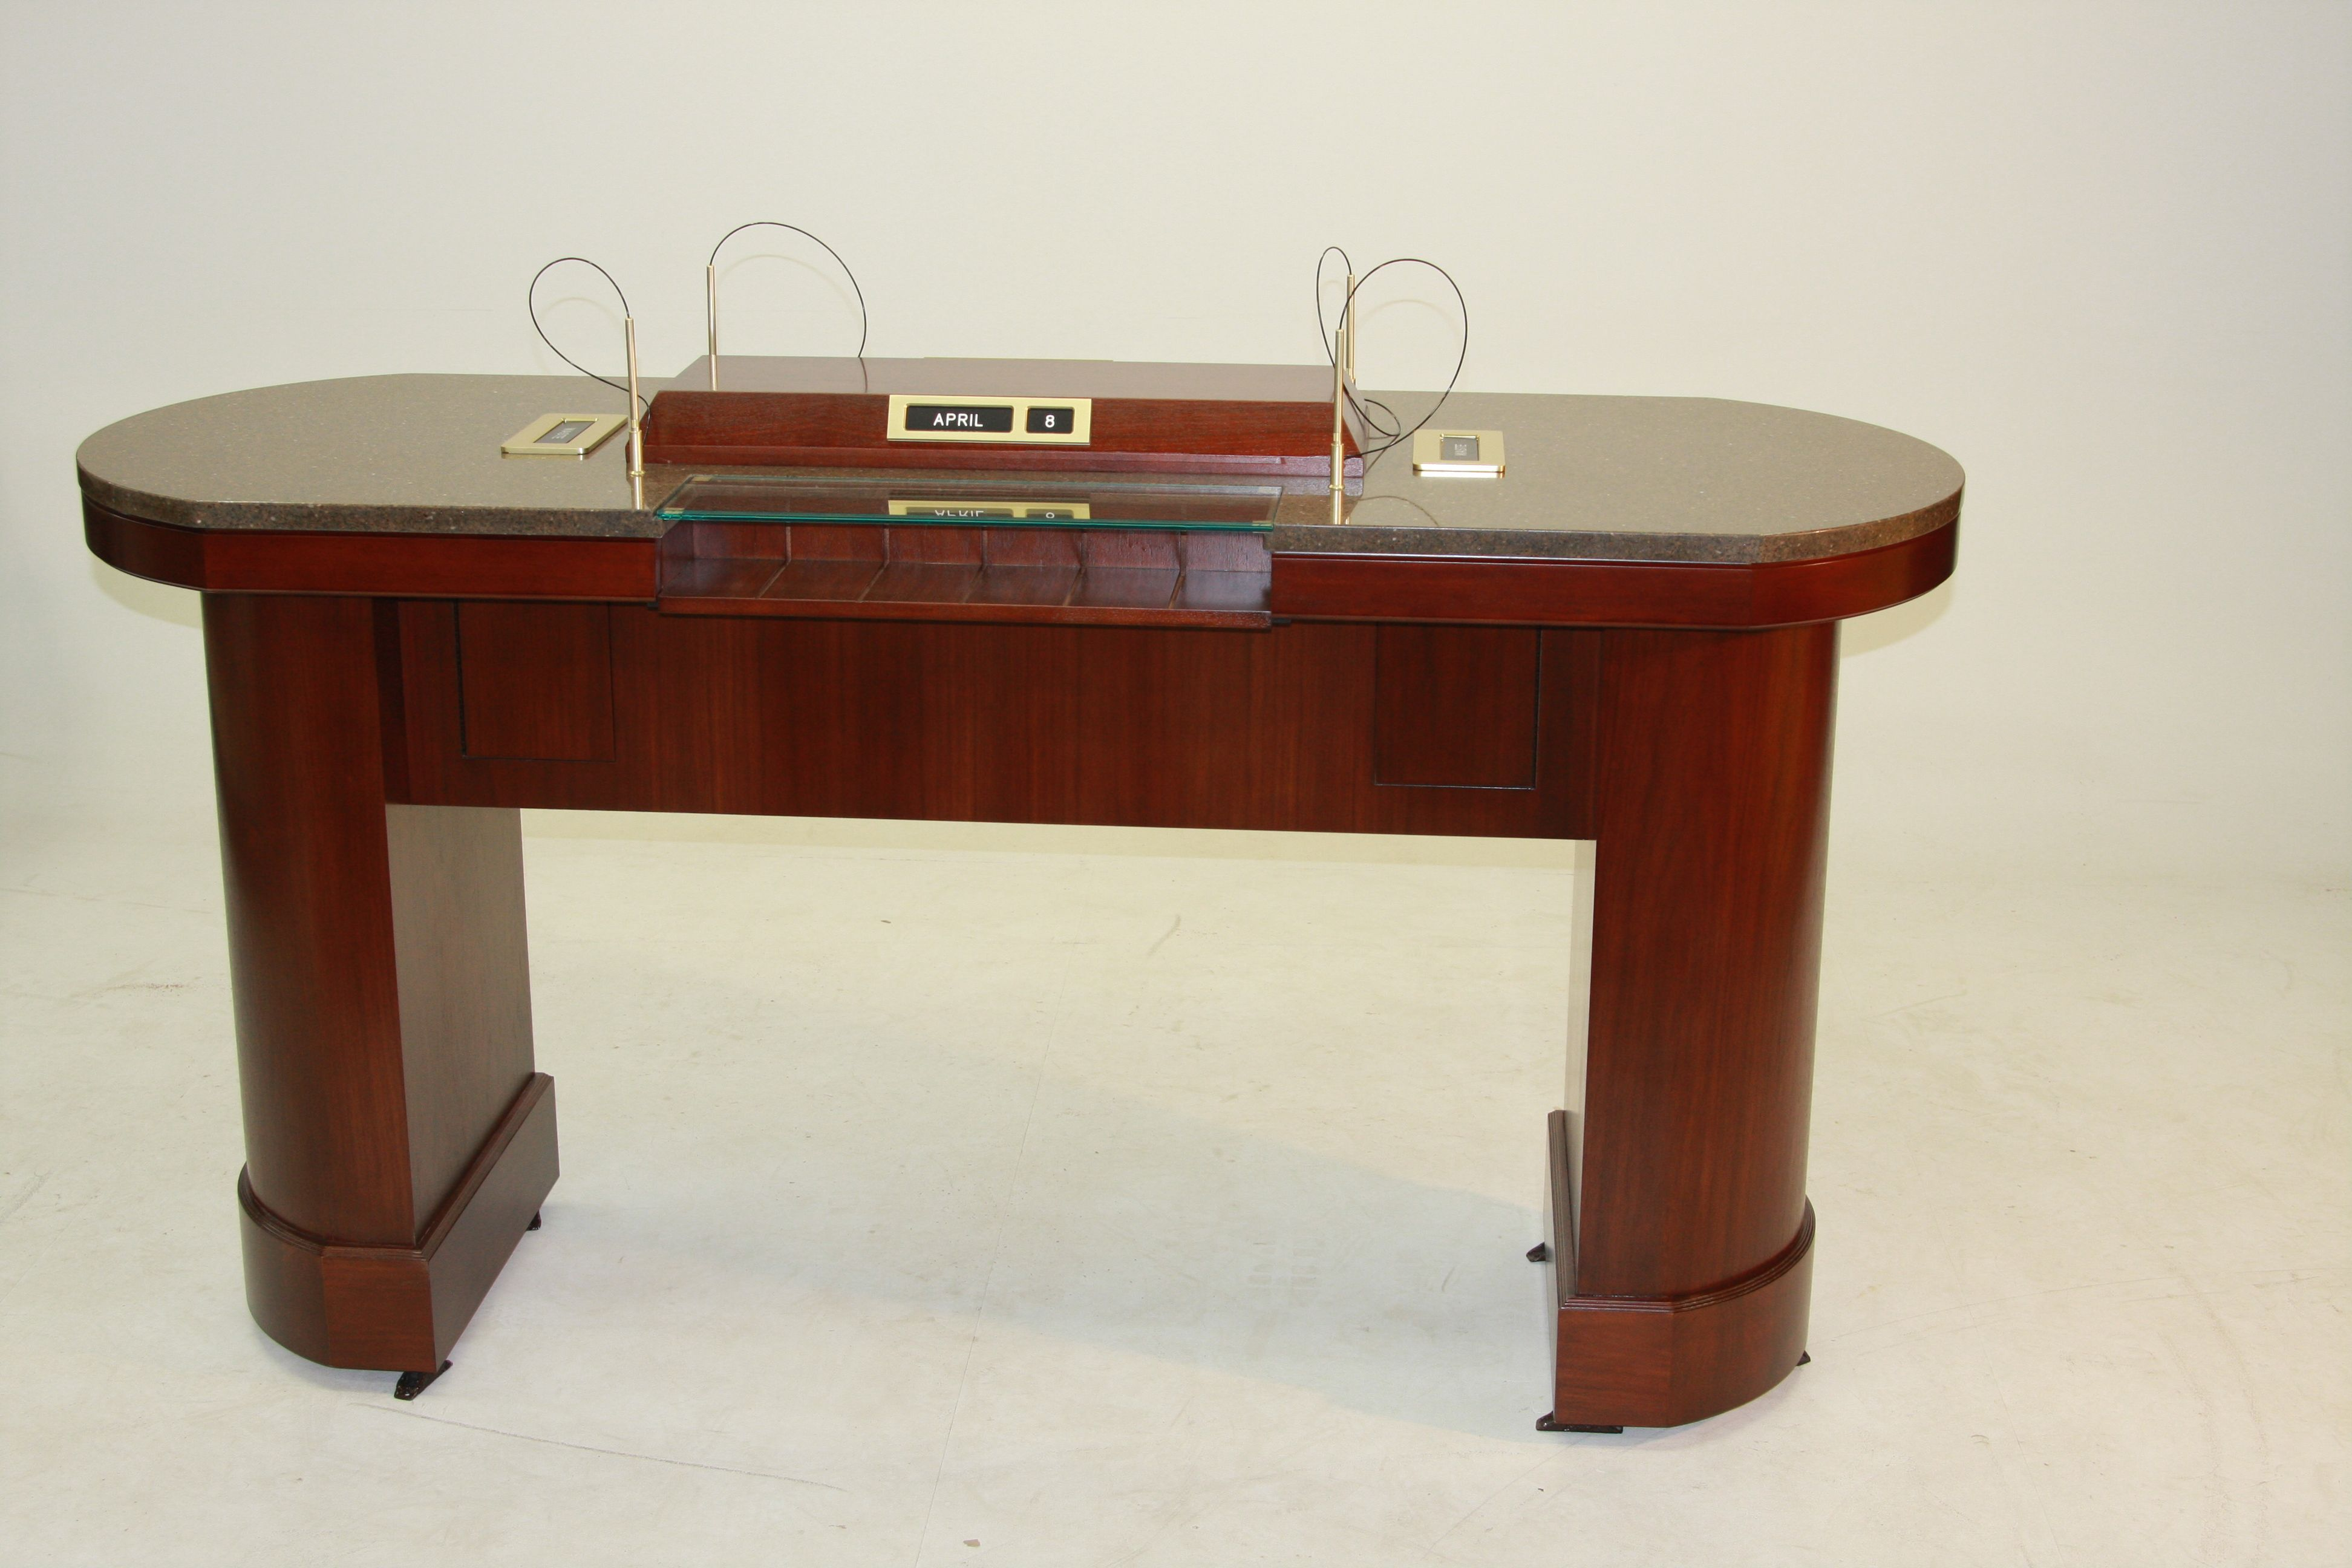 Pin by Doug Shapiro on Bank Contract furniture